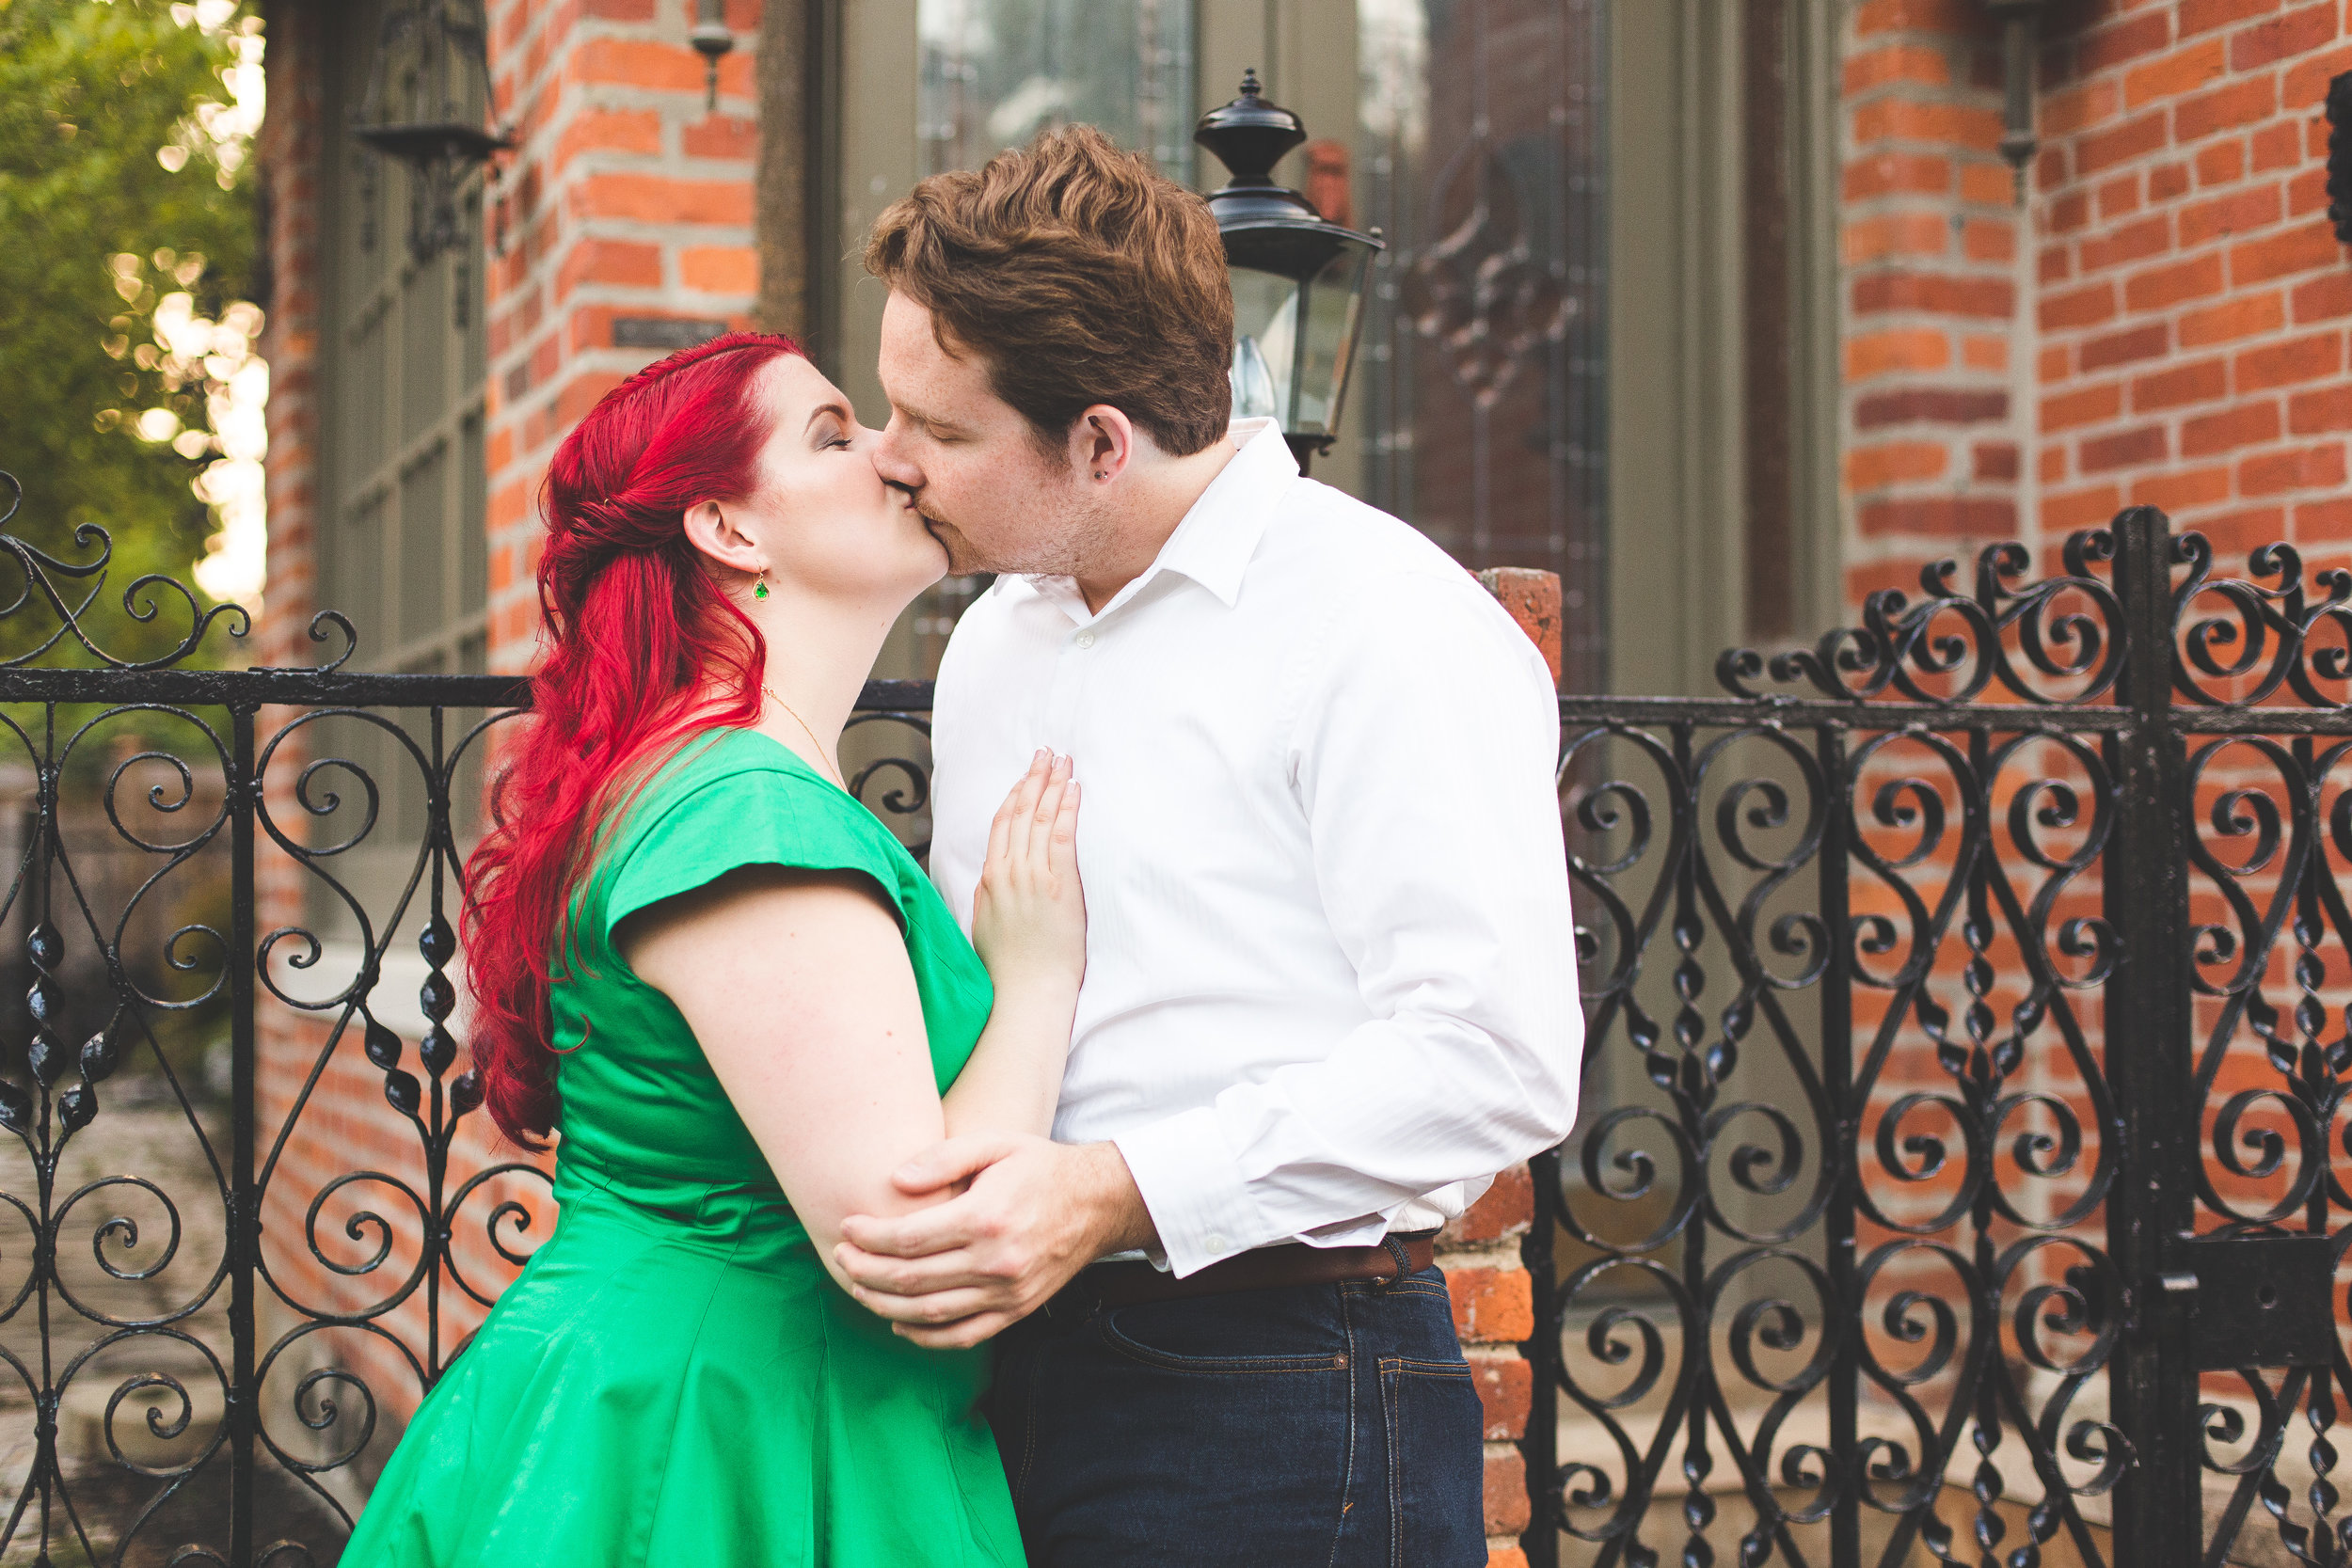 becky and matt's engagement session in german village columbus ohio